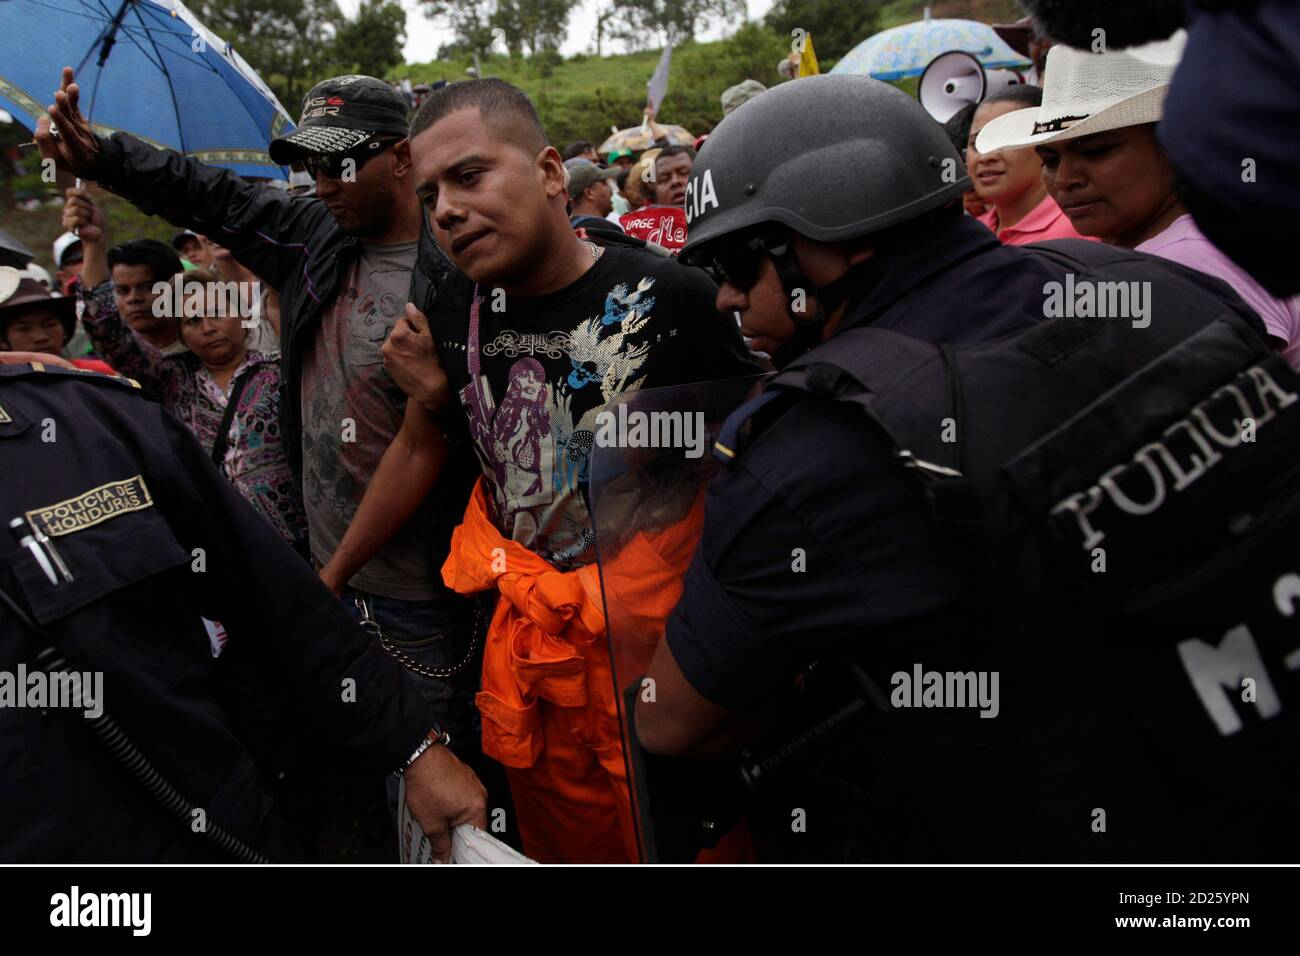 """A man accused of spying supporter Honduras' ousted president Manuel Zelaya is arrested by police during a protest on the outskirts of Tegucigalpa July 17, 2009.Venezuelan President Hugo Chavez said on Friday ousted Honduran President Manuel Zelaya would return to his country """"in the coming hours,"""" casting doubt on the outcome of mediation talks set for Saturday. REUTERS/Edgard Garrido (HONDURAS POLITICS CONFLICT) Stock Photo"""